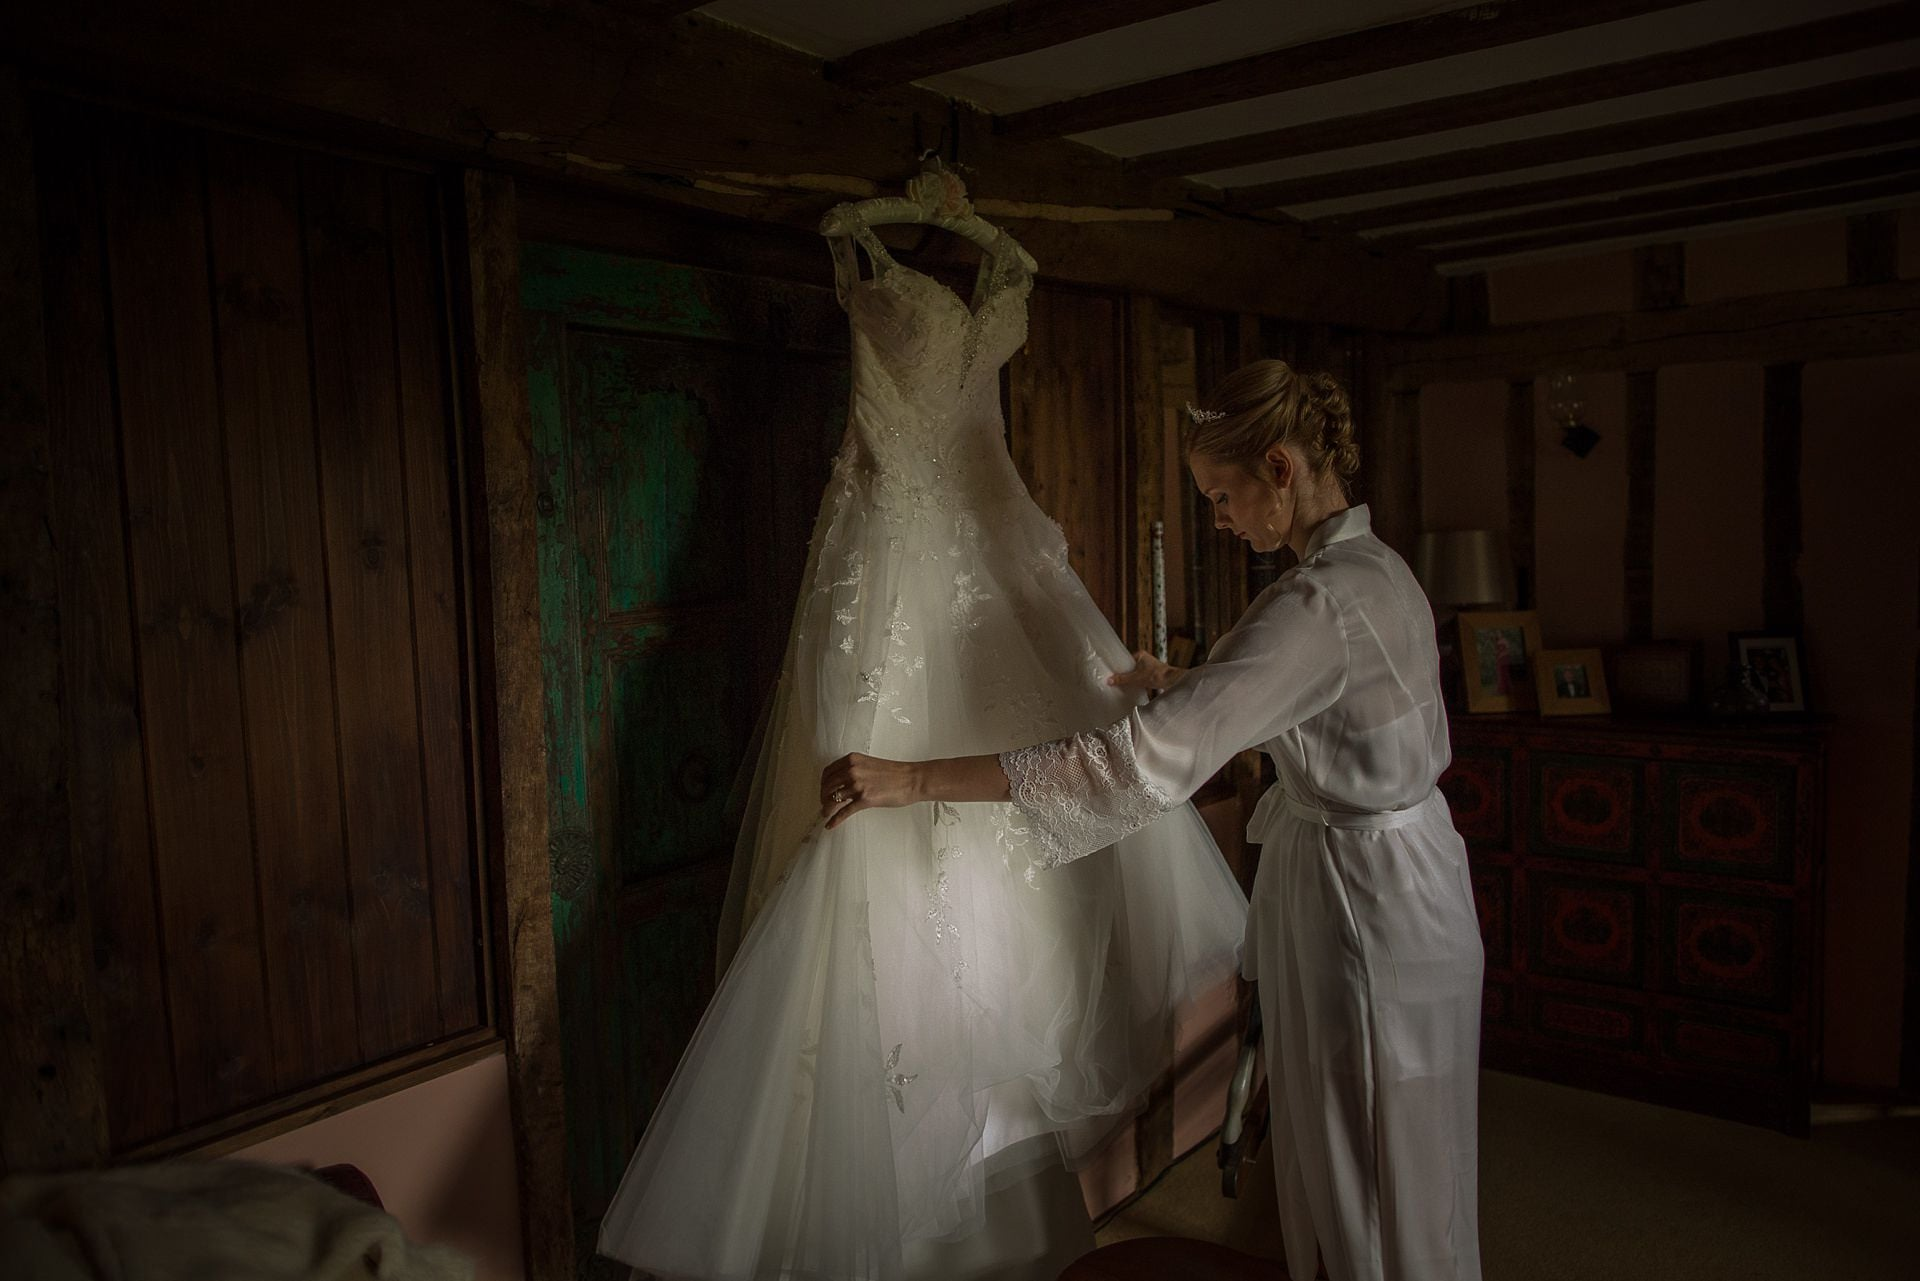 Shropshire Documentary Wedding Photographer pbartworks captures Sarah tending to her dress before leaving for Delbury Hall